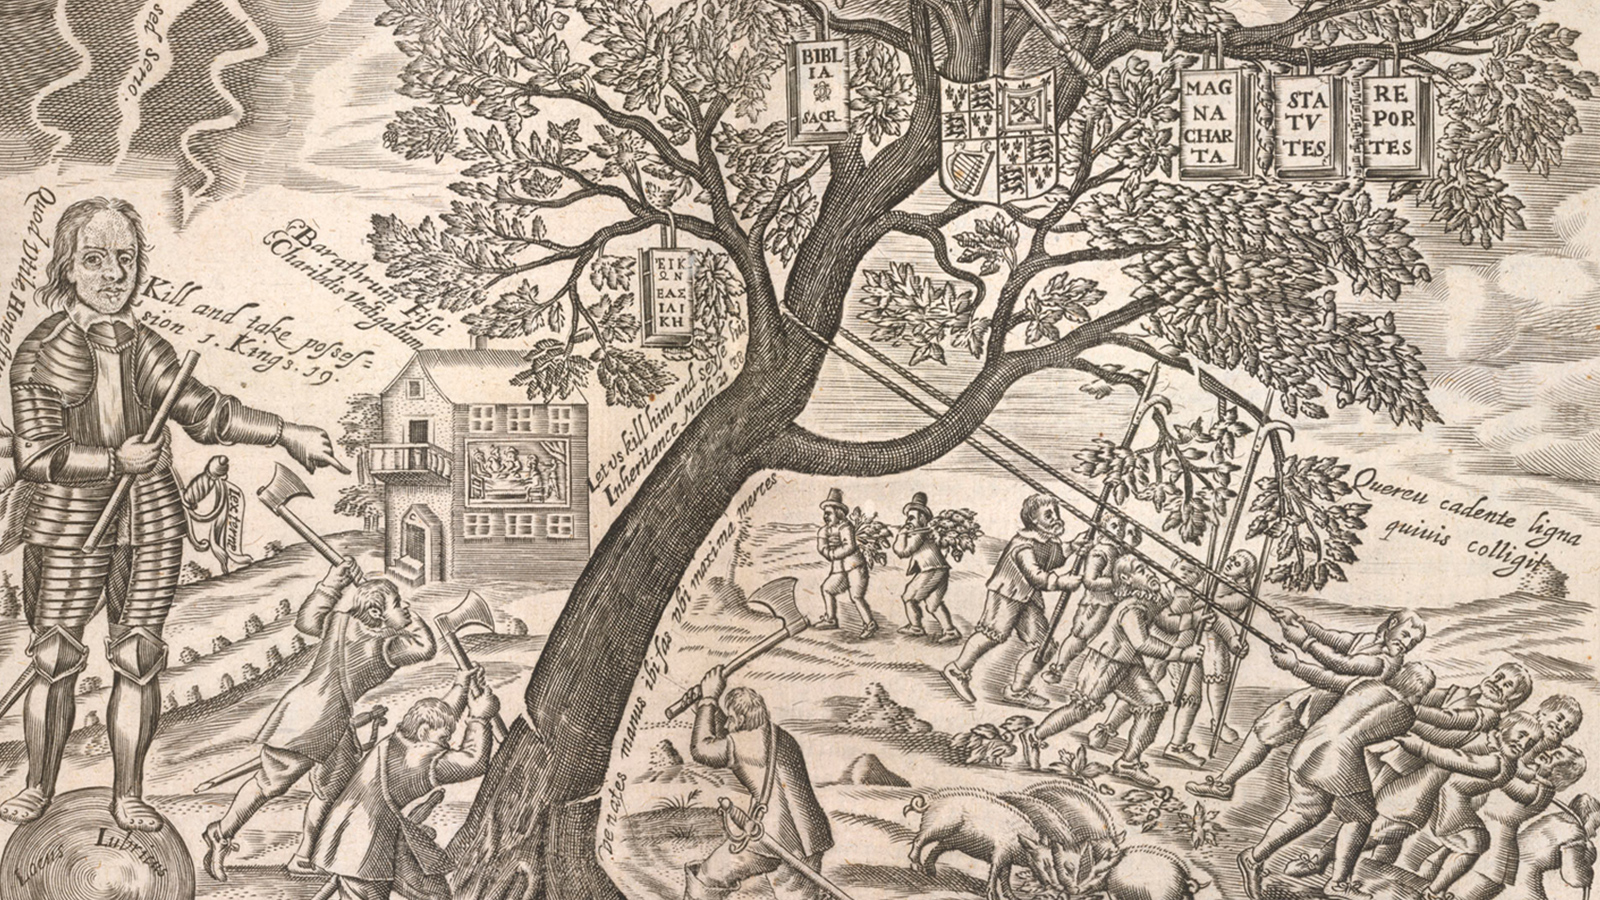 Turbulent 17th century crop depicting Oliver Cromwell cutting down the tree of the monarchy